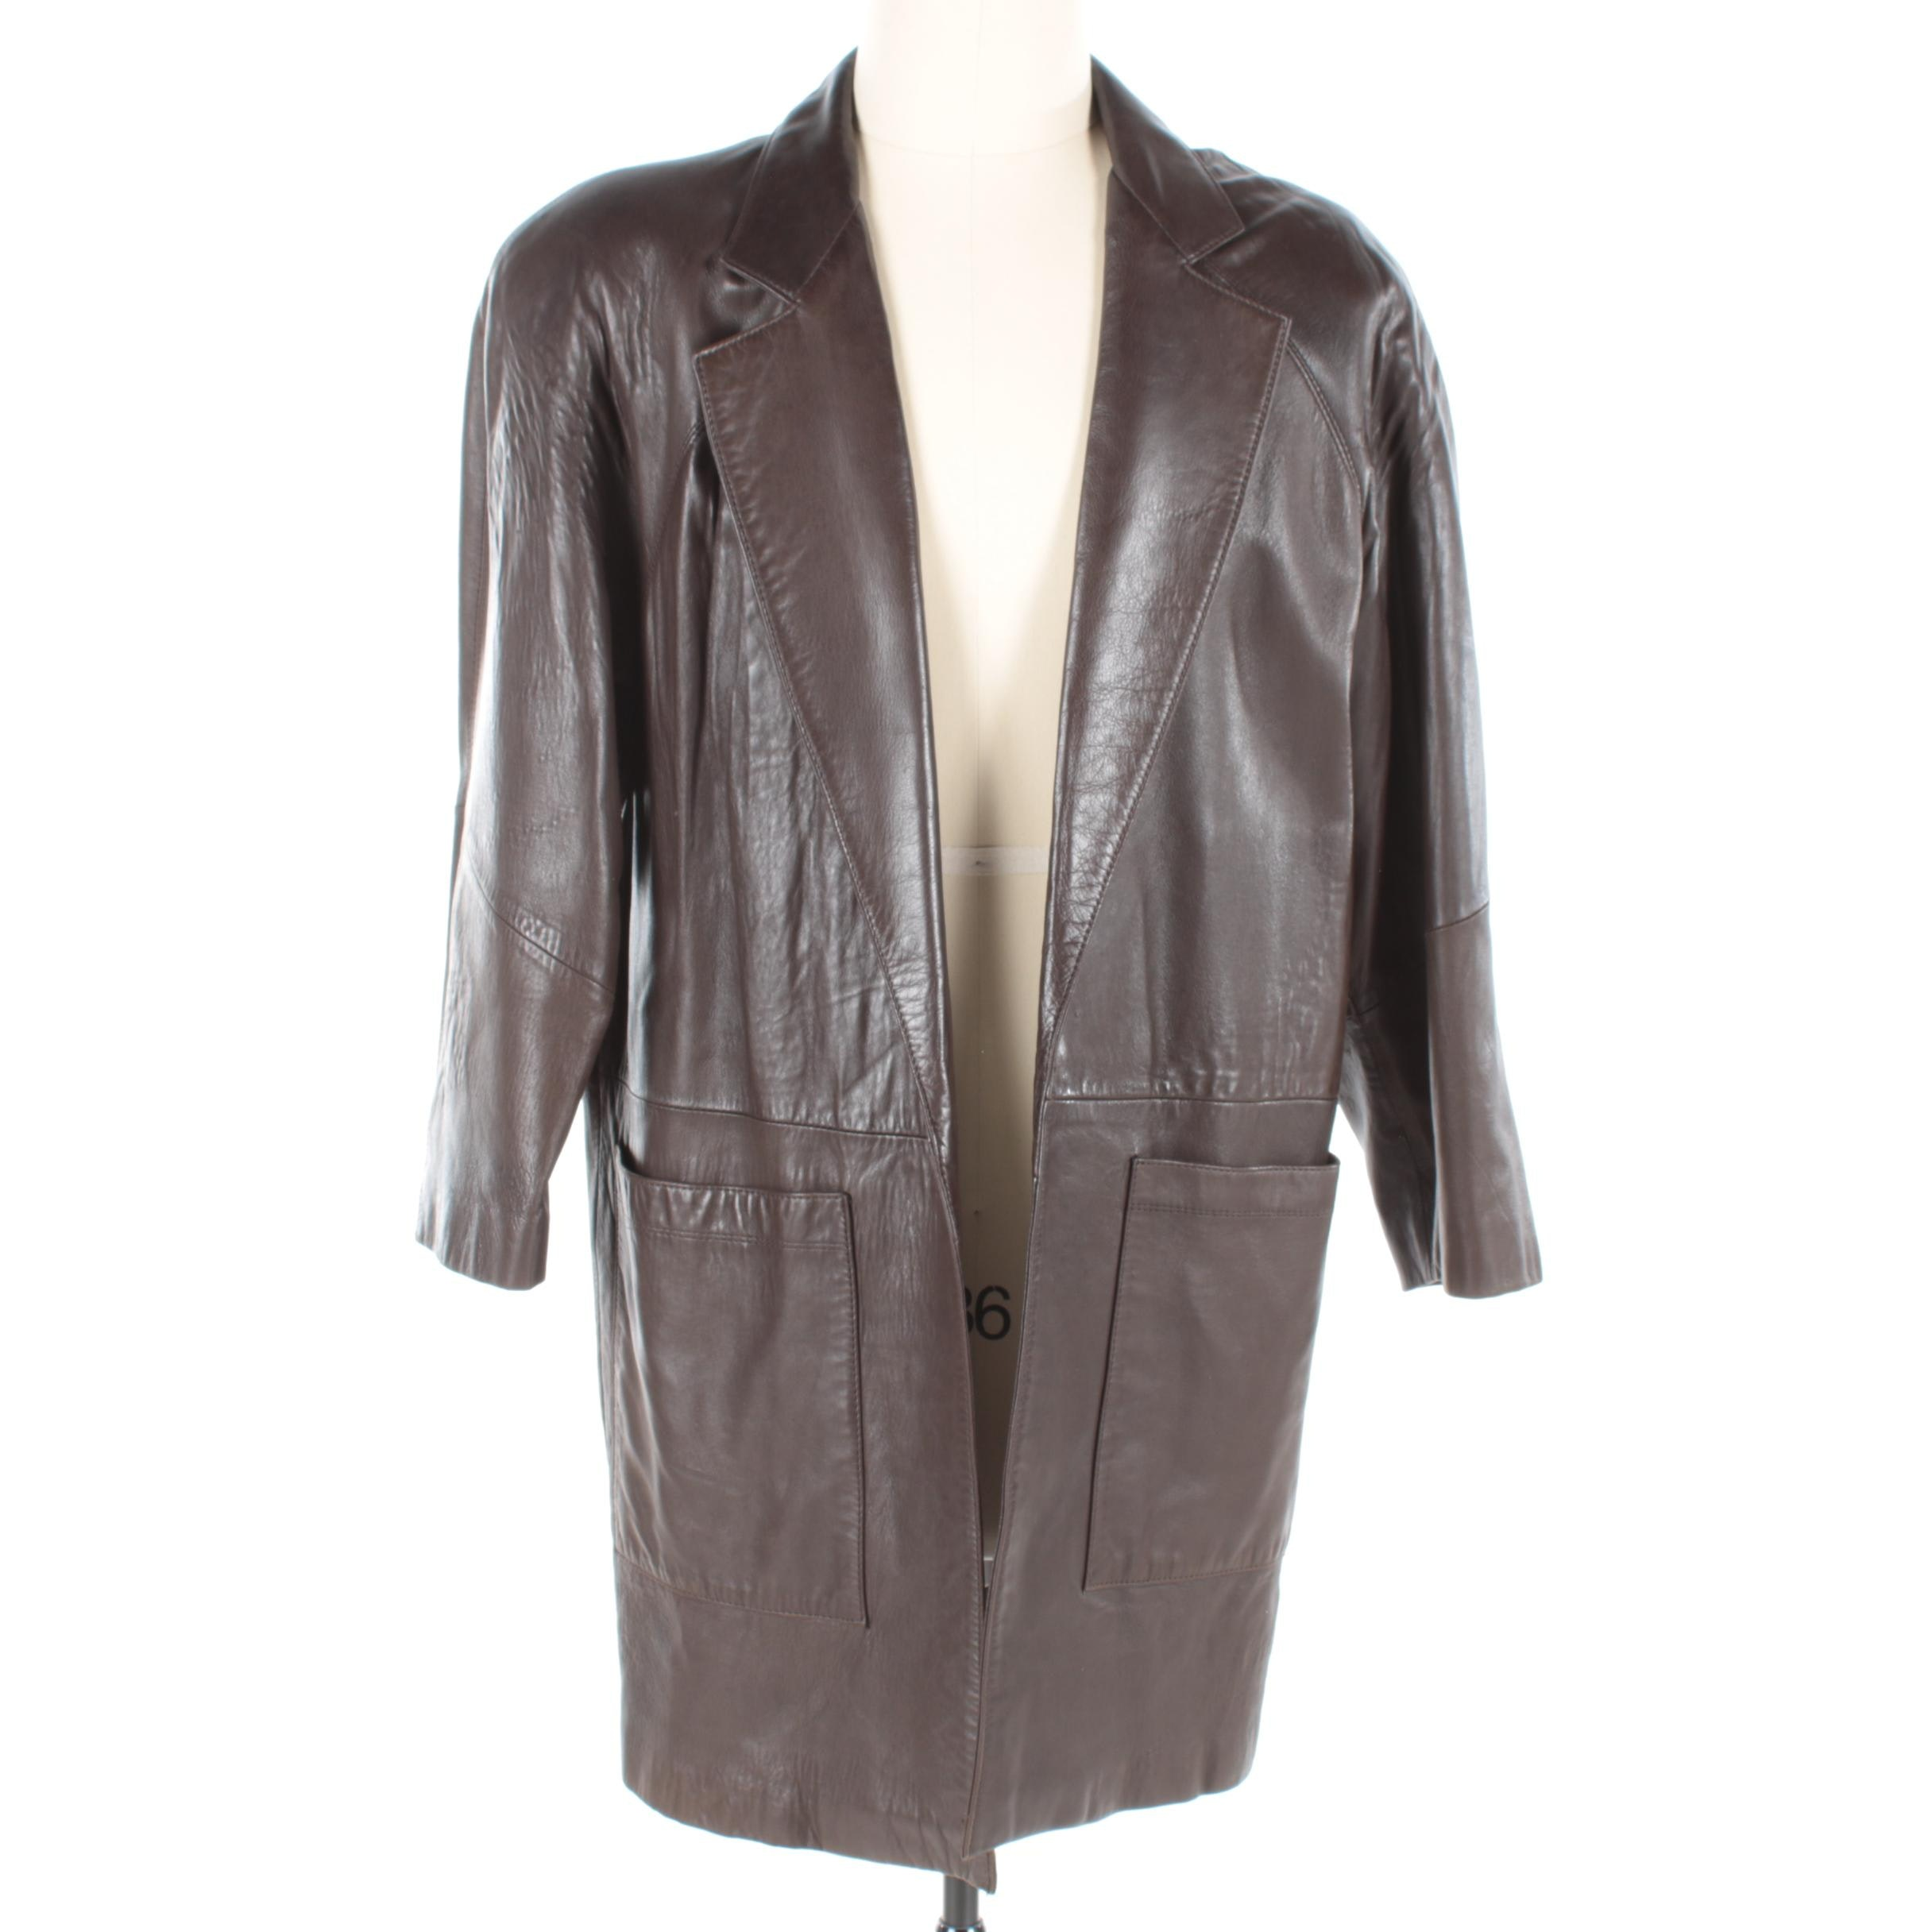 Women's Andrew Marc Chocolate Brown Leather Jacket